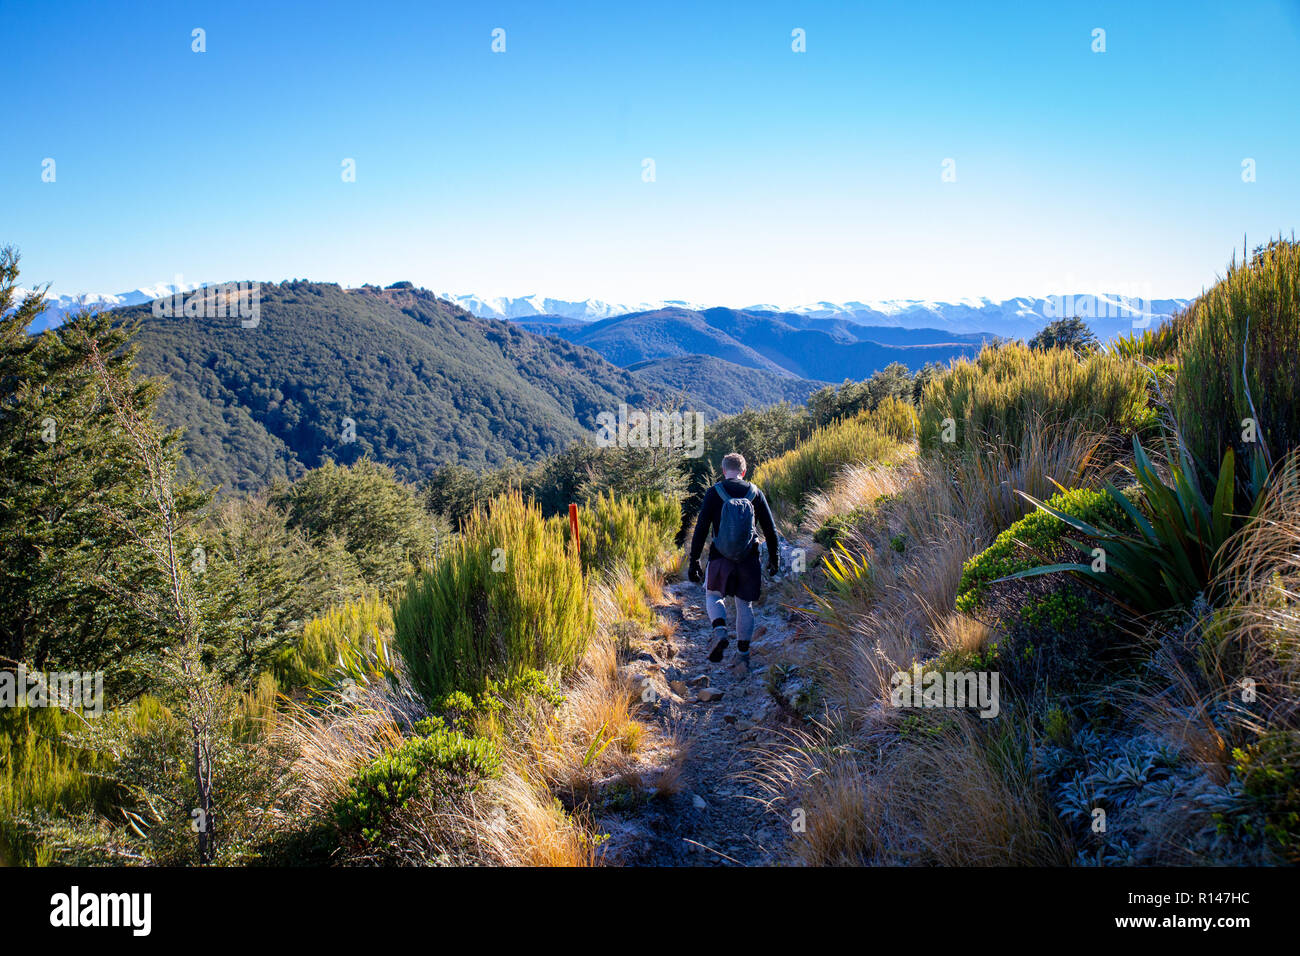 A man enjoying the outdoors hikes along a hillside track in the mountains in New Zealand Stock Photo